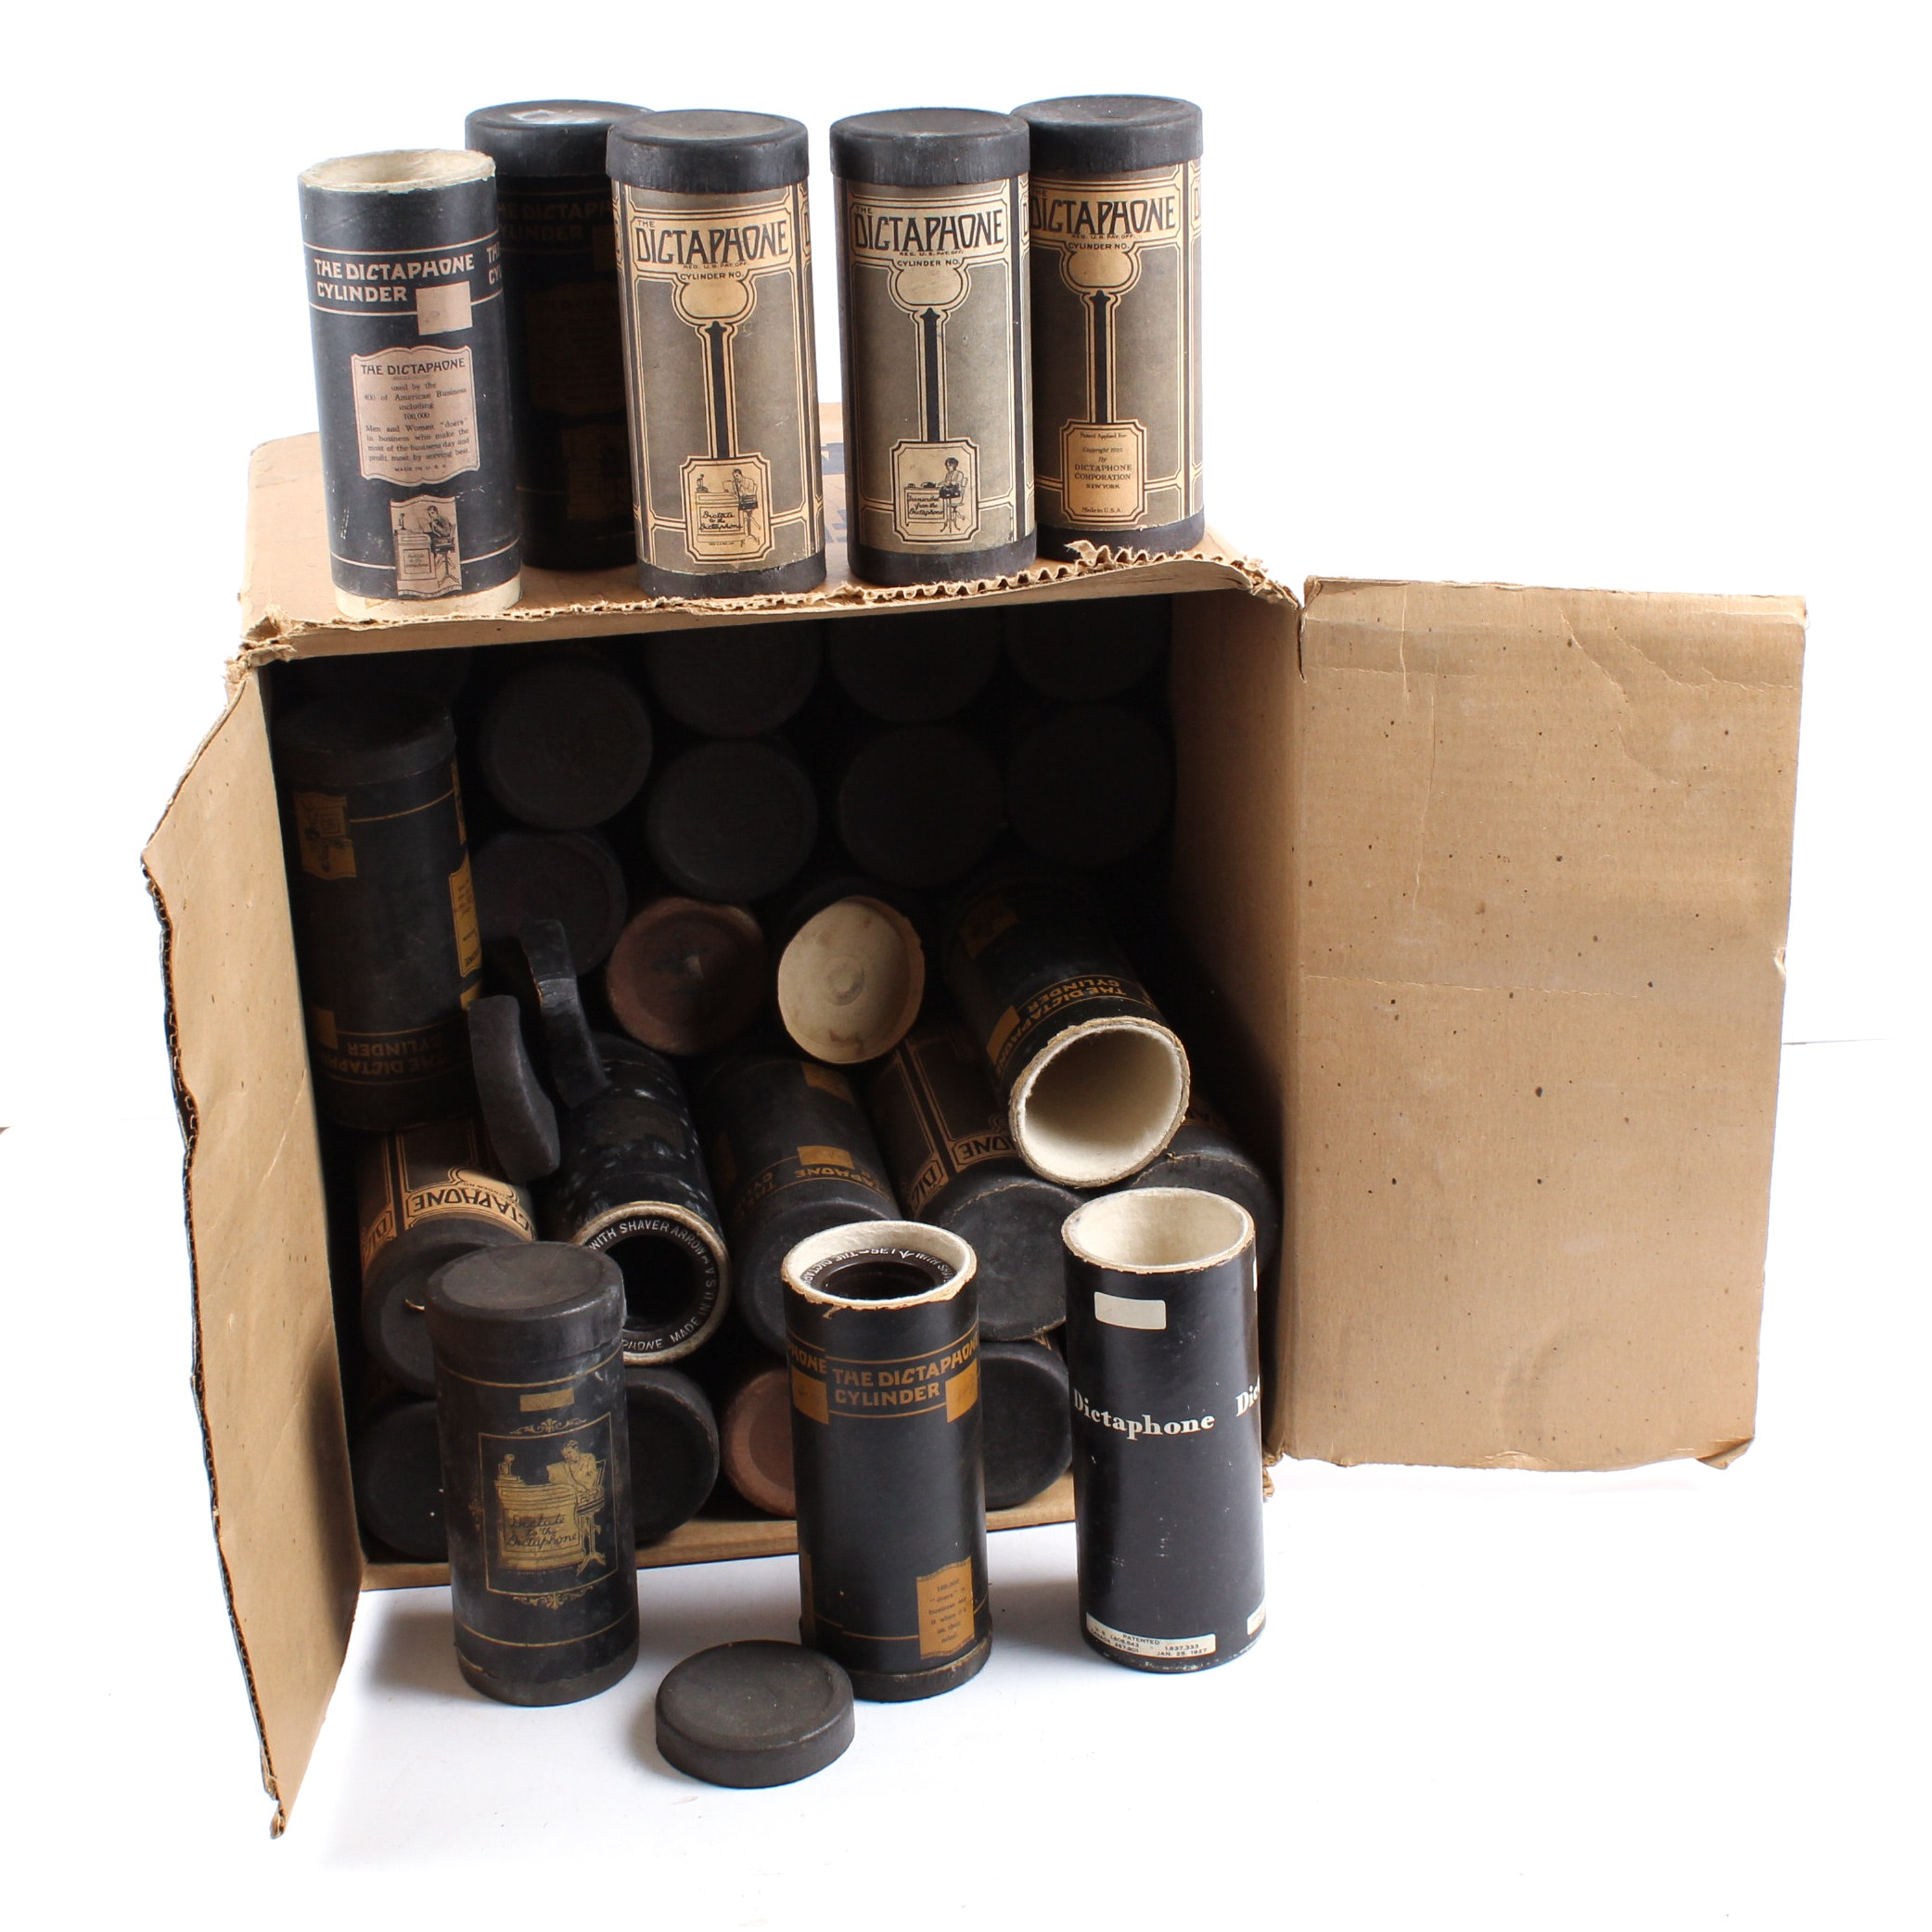 Dictaphone Wax Cylinder Collection